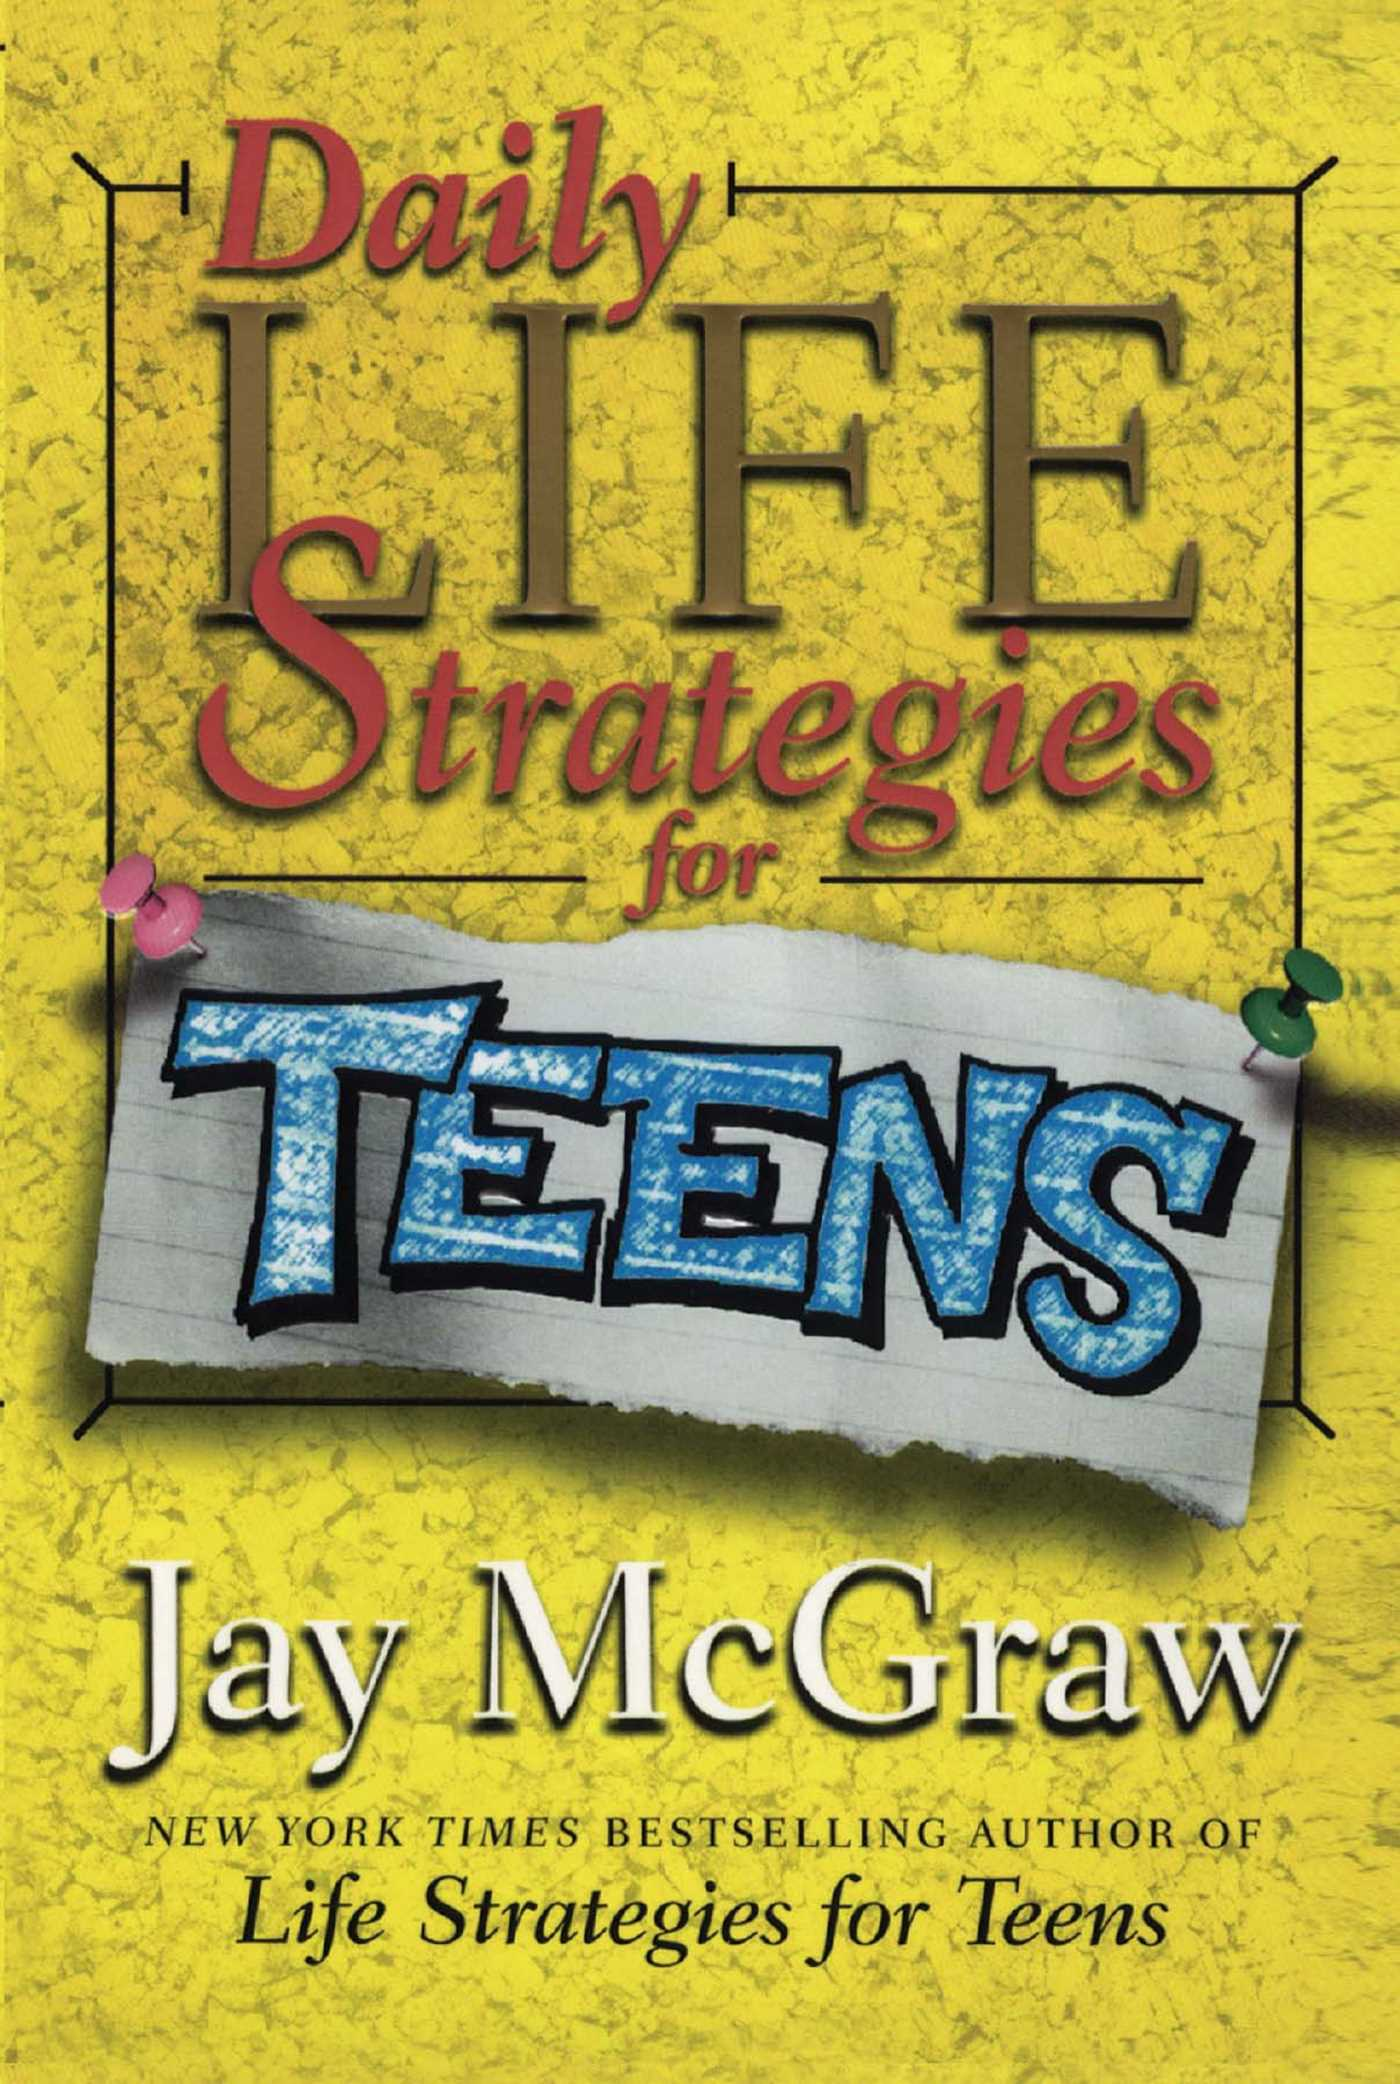 Daily life strategies for teens 9780743224710 hr